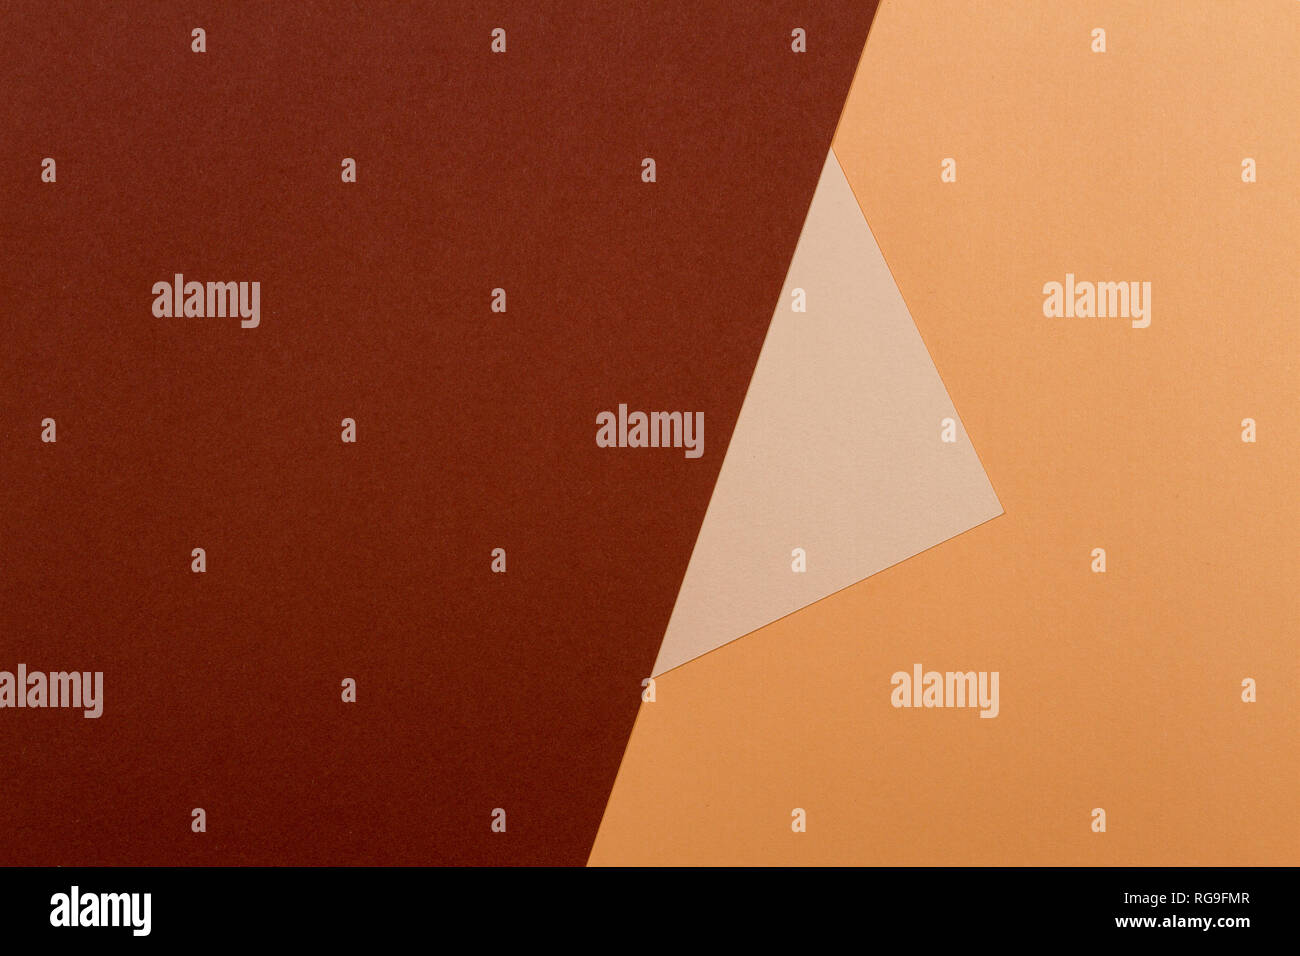 Color papers geometry composition background with beige and brown tones Stock Photo